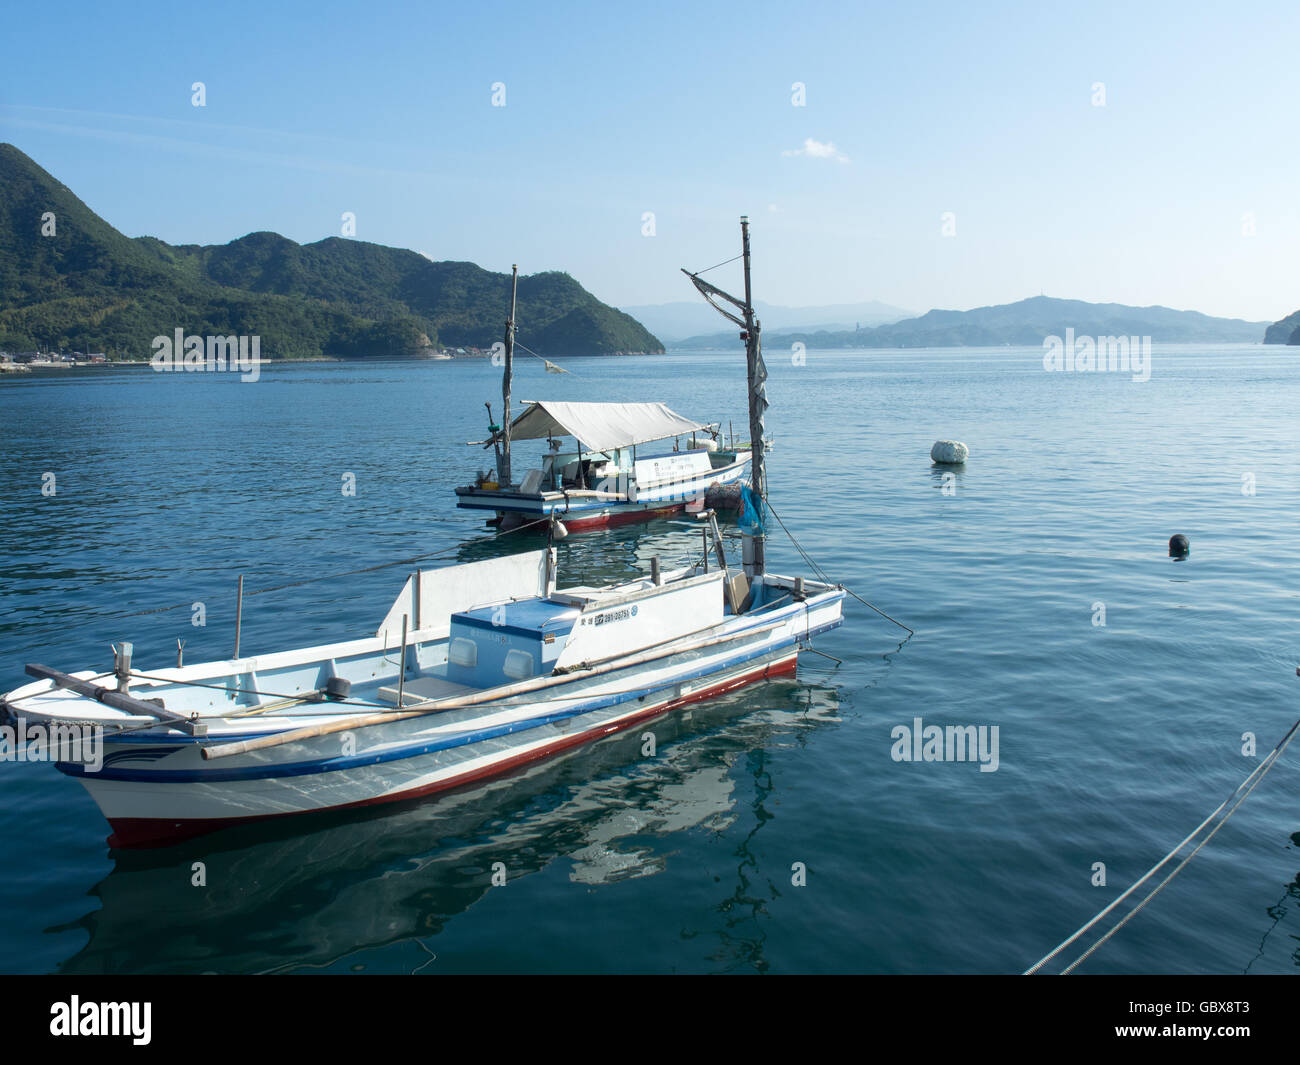 Two wooden fishing boats moored in the Seto Inland Sea. - Stock Image